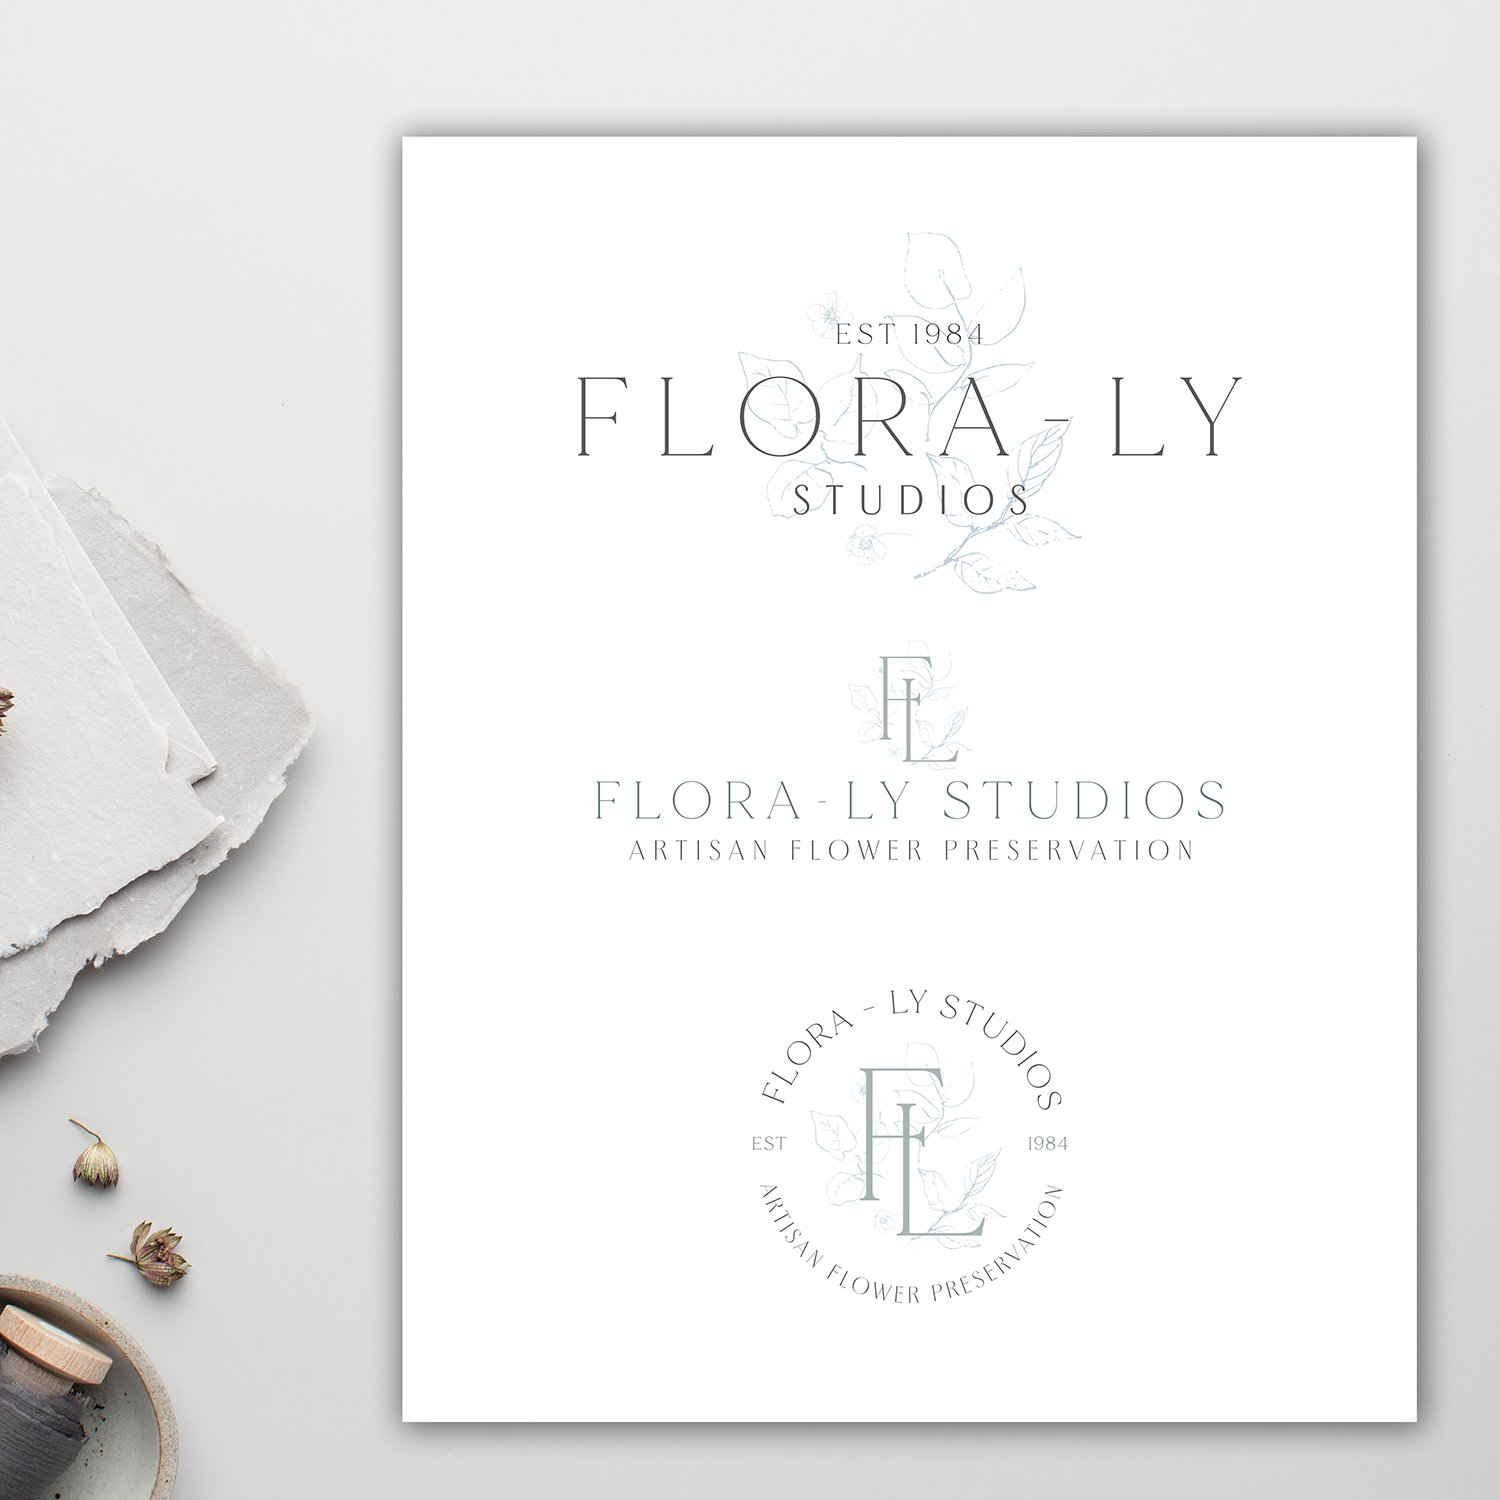 refined, creative, traditional, timeless style in the logo design for Flora-Ly Studios | with handdrawn floral elements